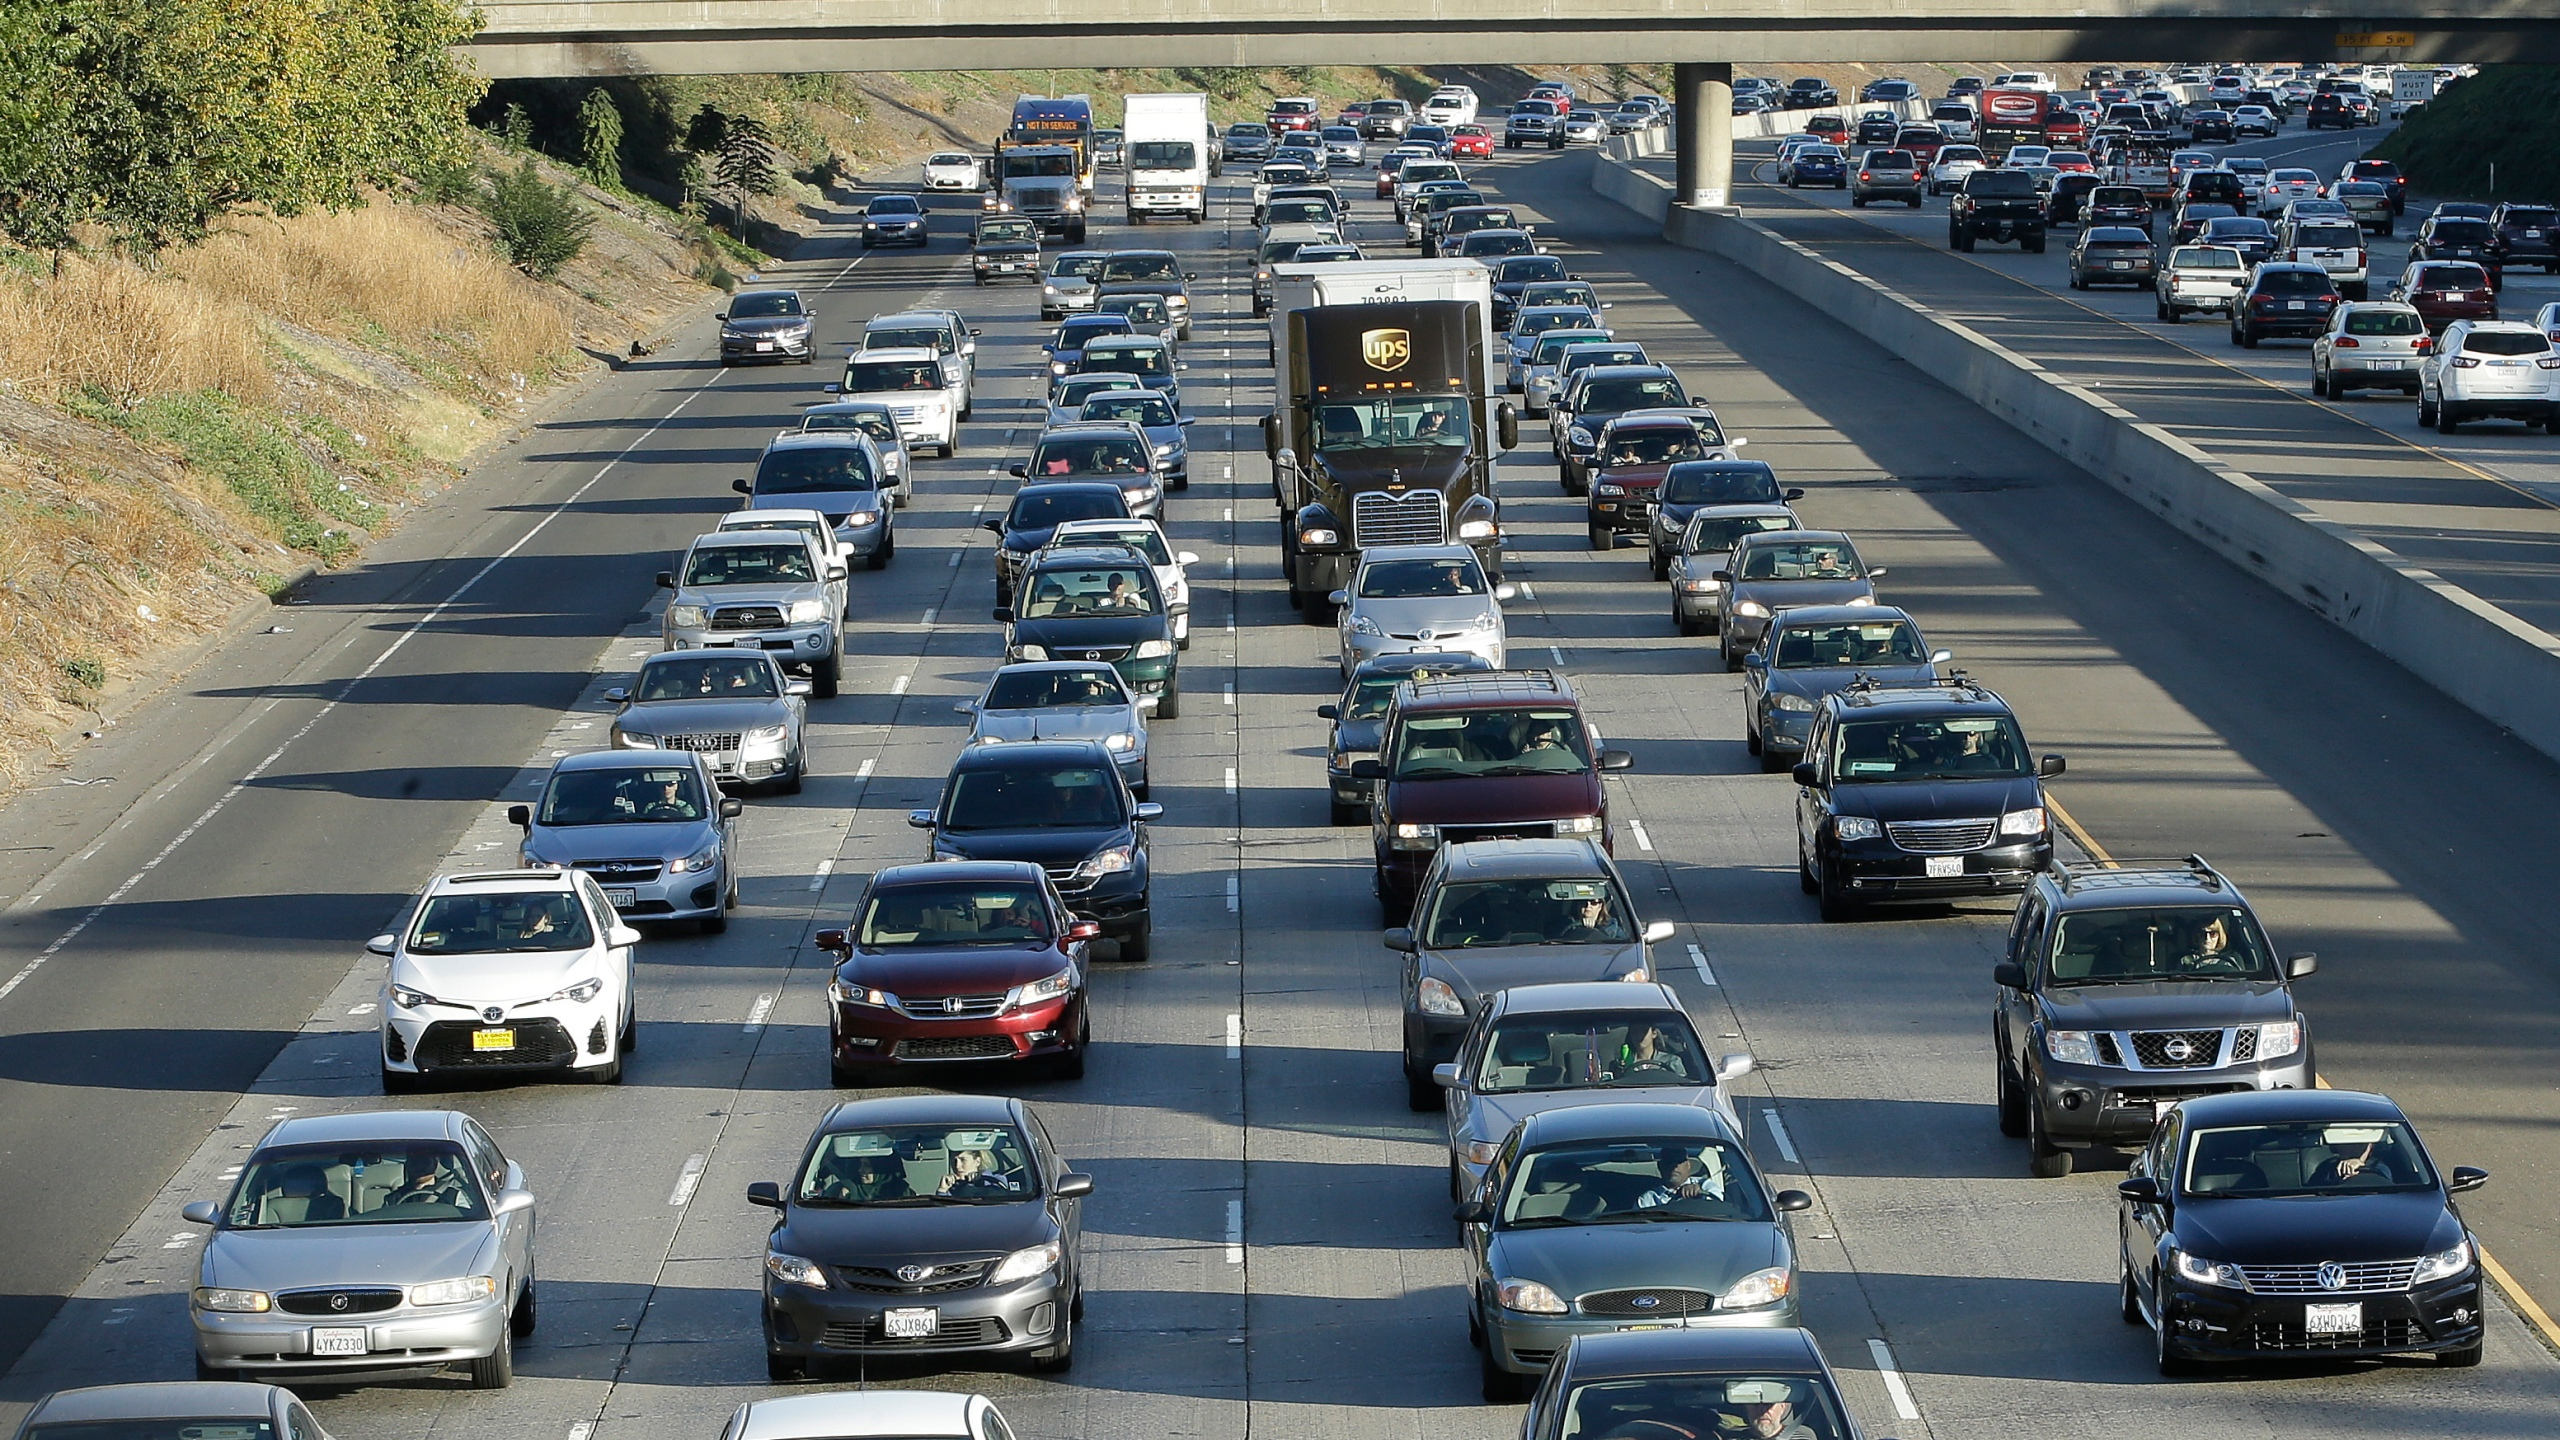 The DMV invites community organizations, colleges, universities and government agencies interested in traffic safety to apply for a highway safety grant.